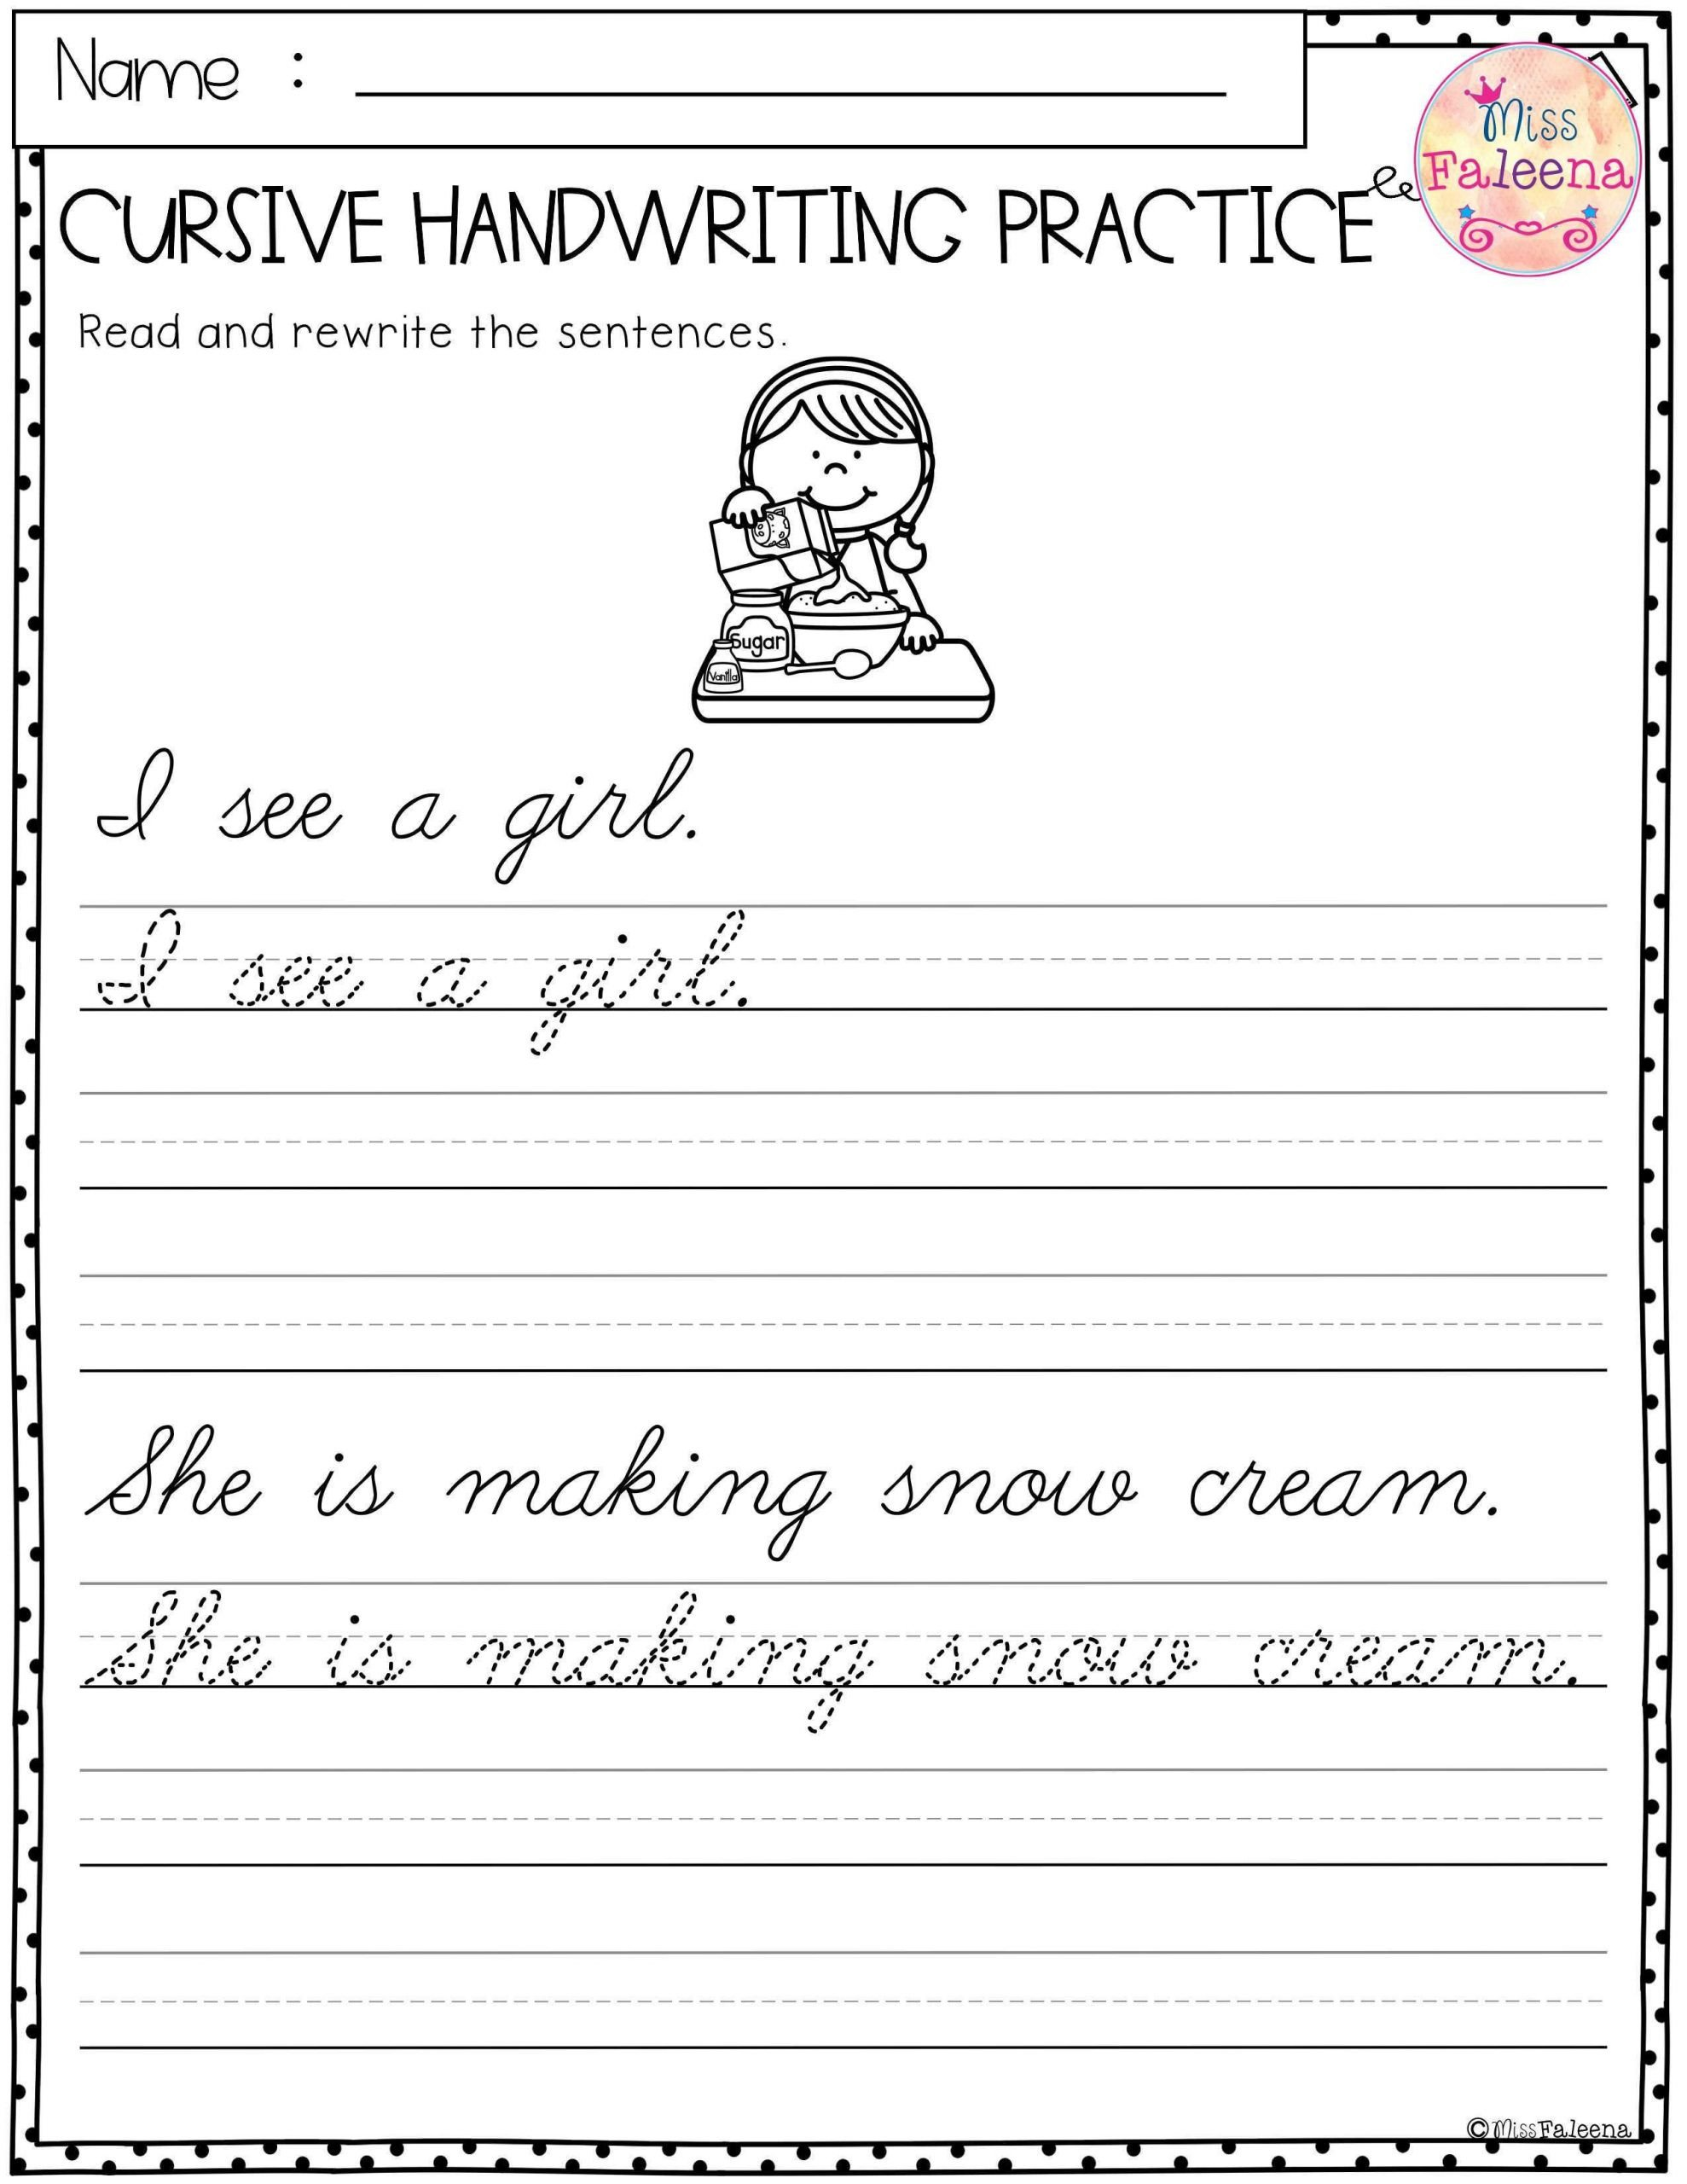 excelent cursive practice sentences photo ideas coloring book pdf printable scaled